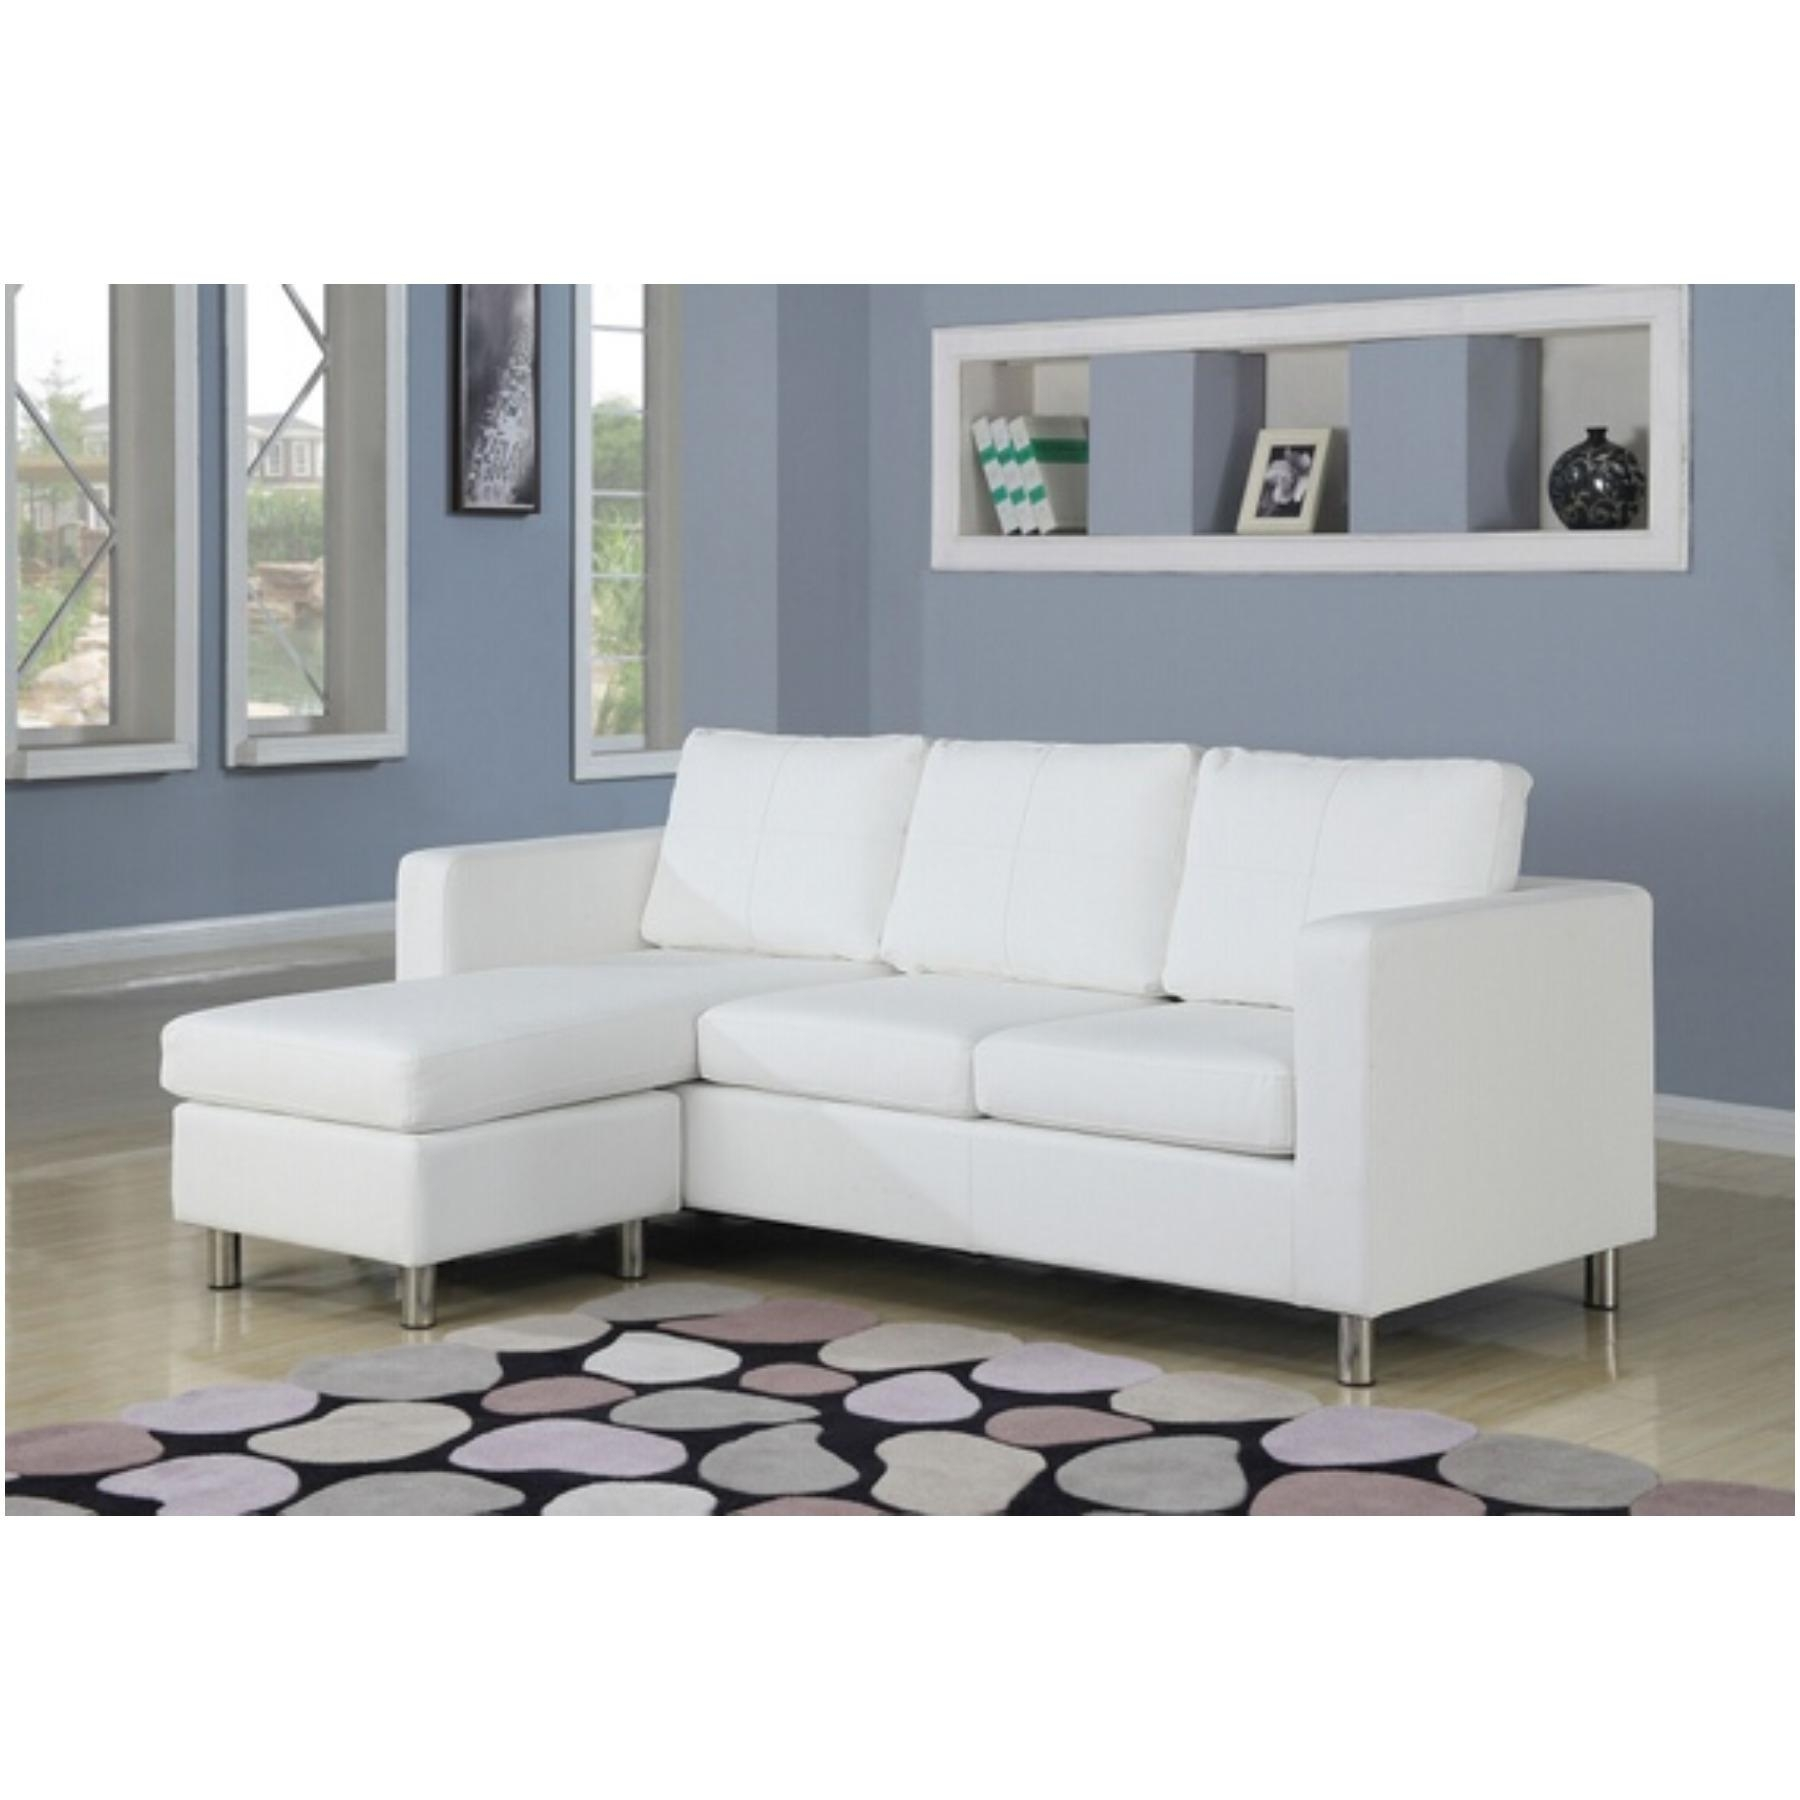 Apartment Size Sectional Inside Apartment Sectional Sofa With Chaise (View 11 of 15)